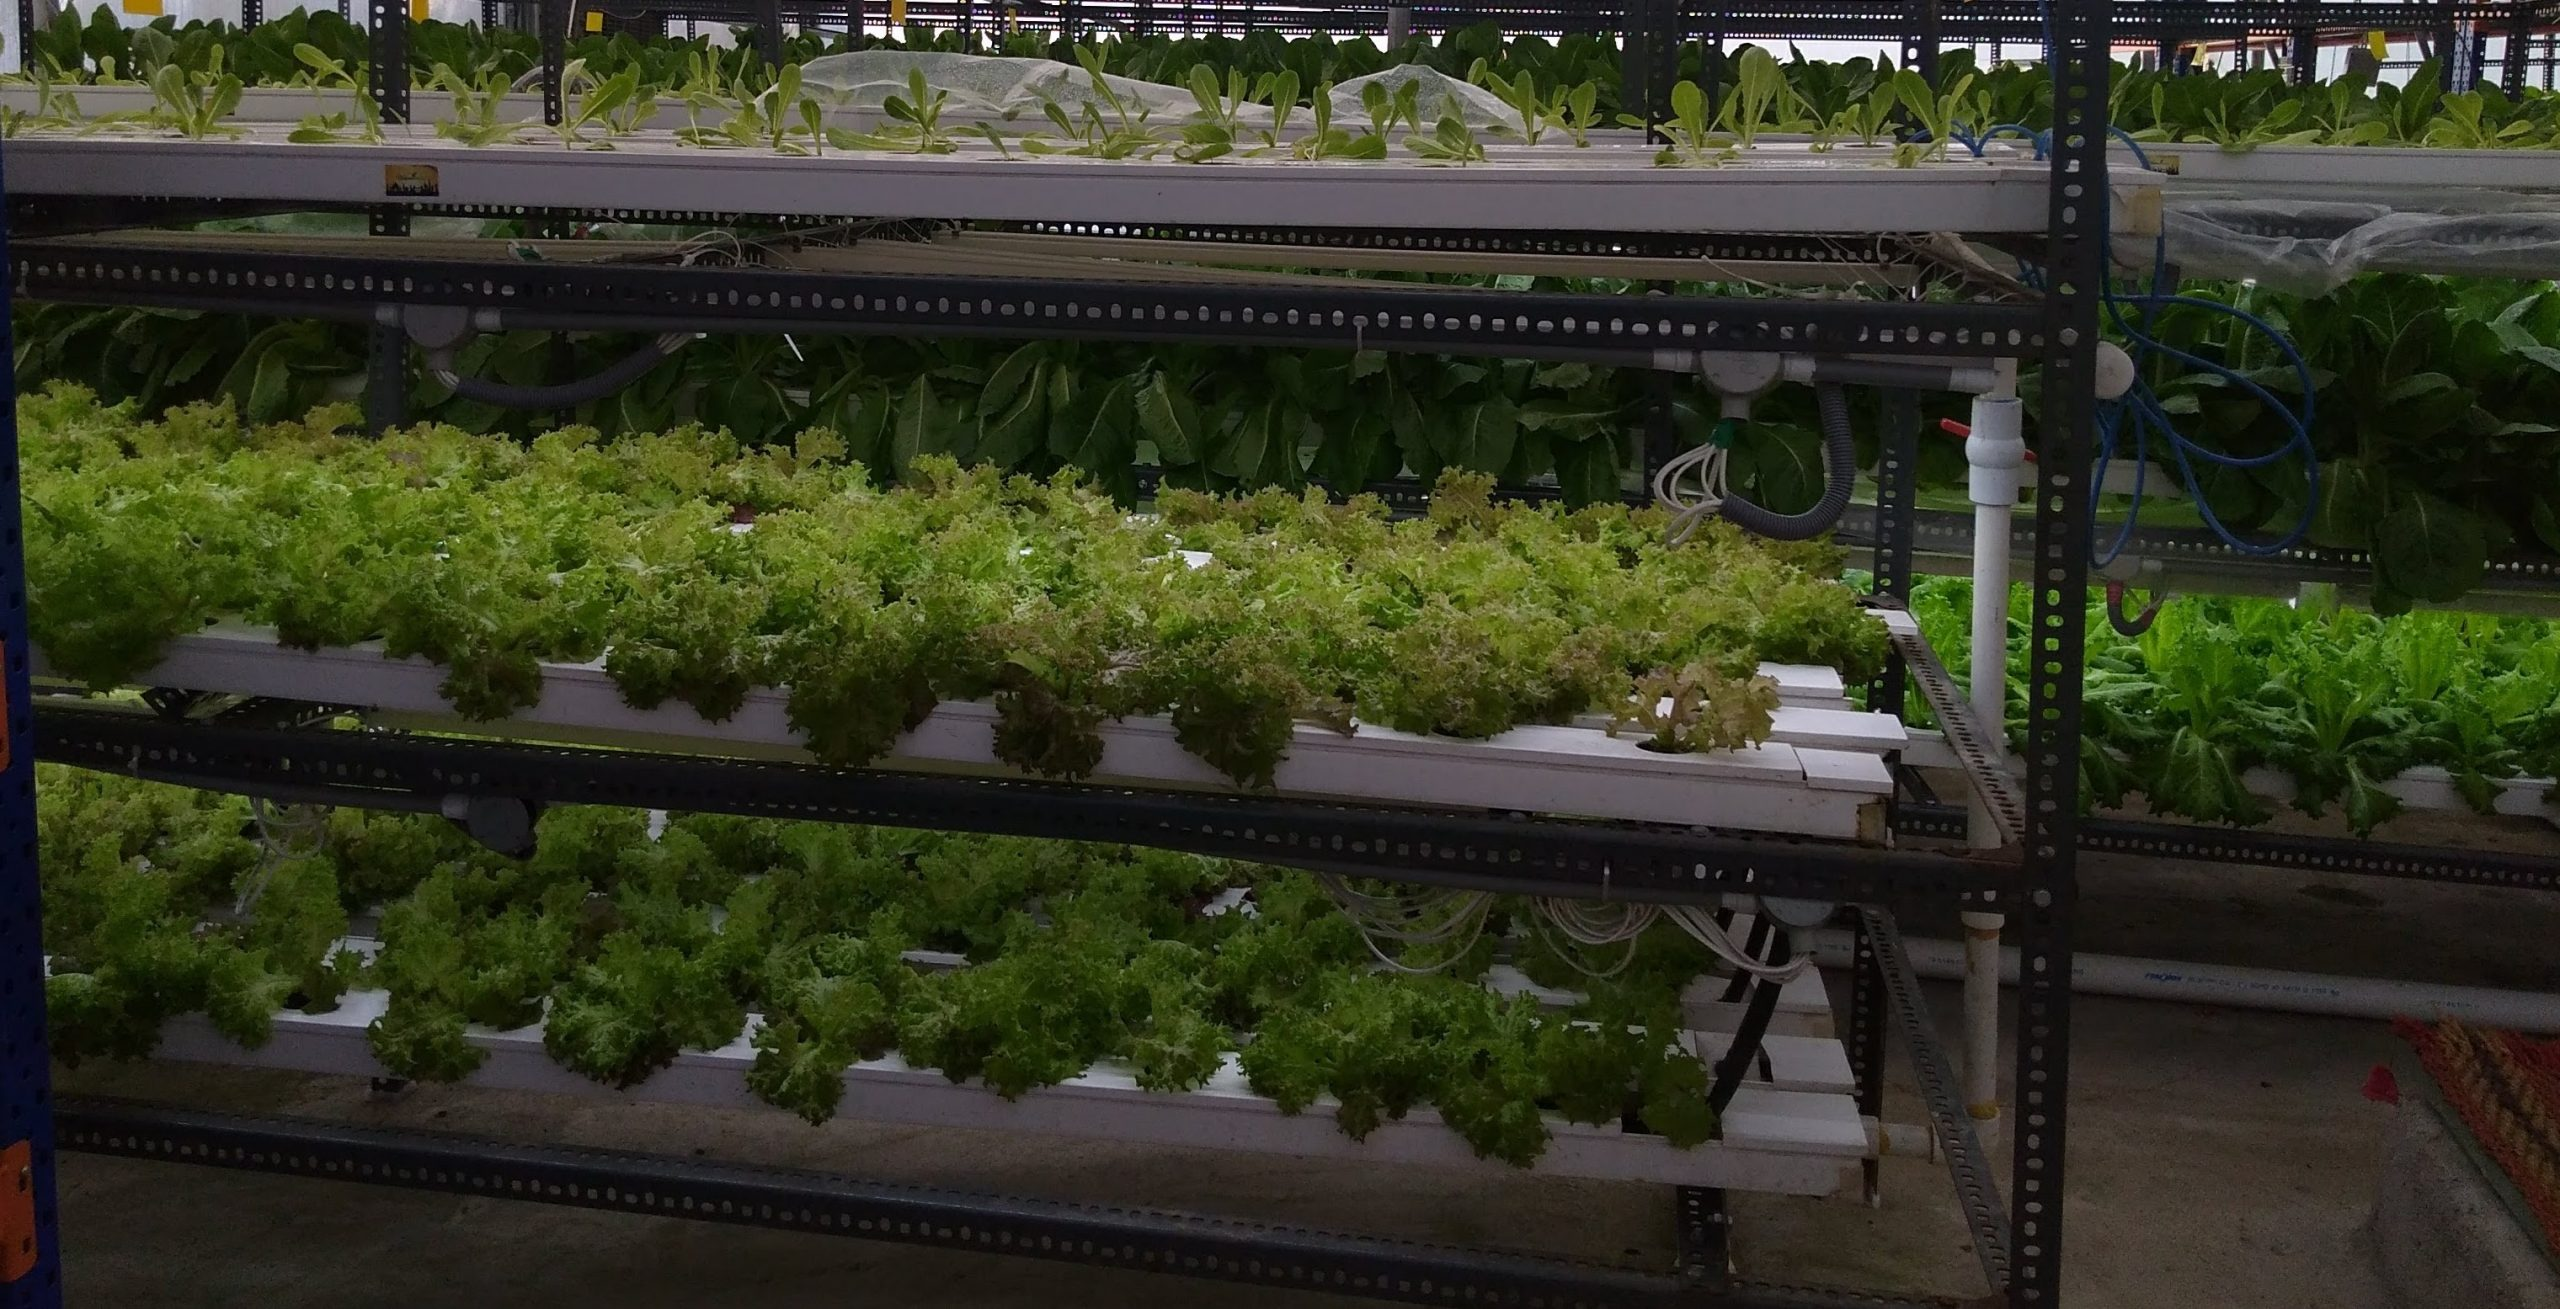 Focus-Sustainable Farming by Hydroponic Farms